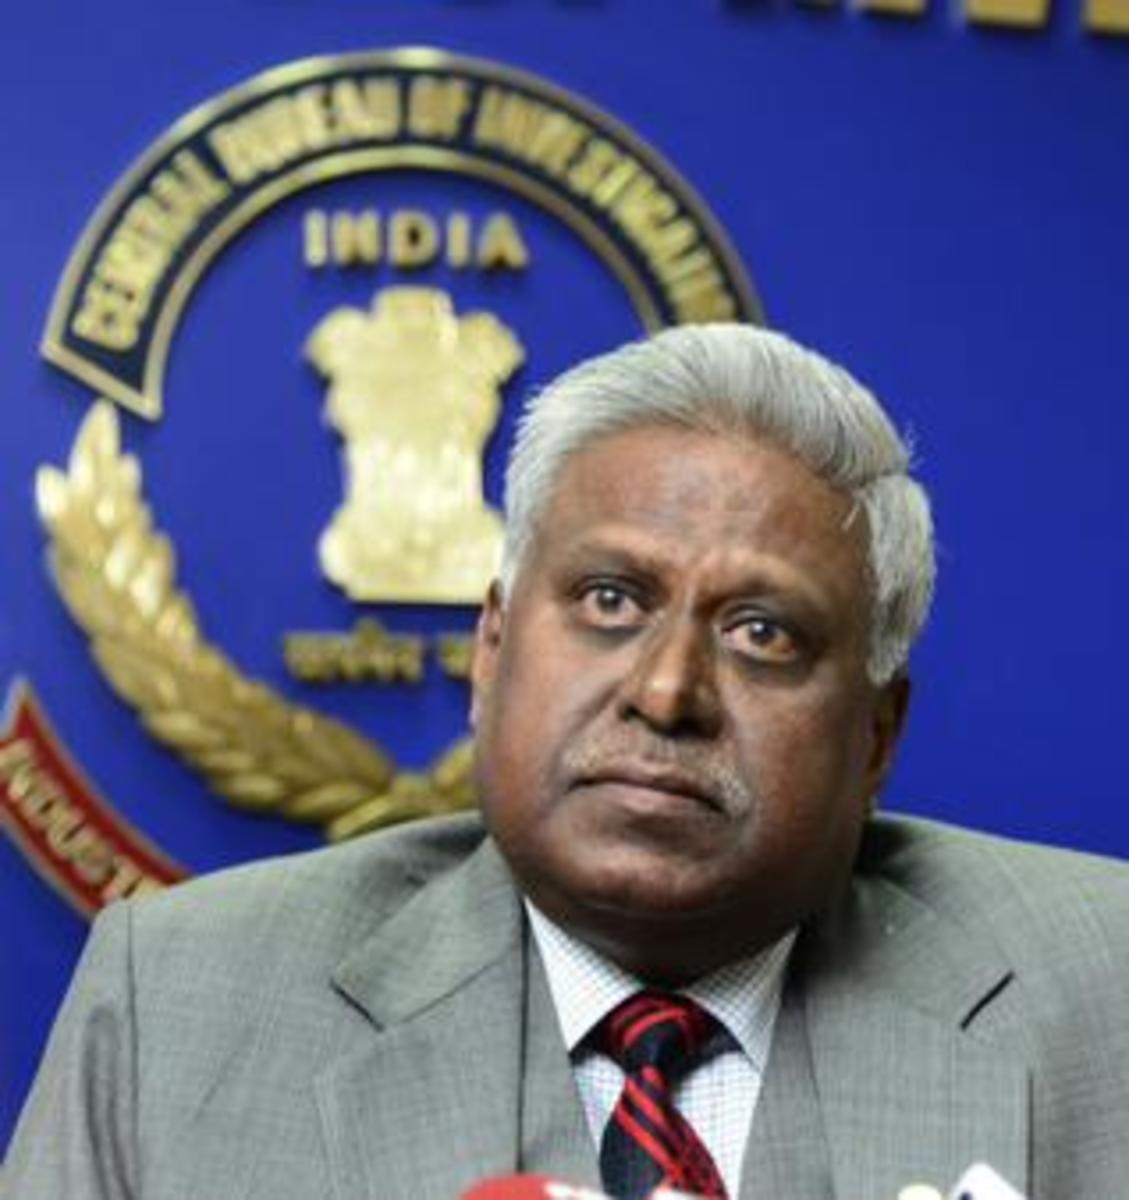 Ranjit Sinha, IPS, is the Director of CBI